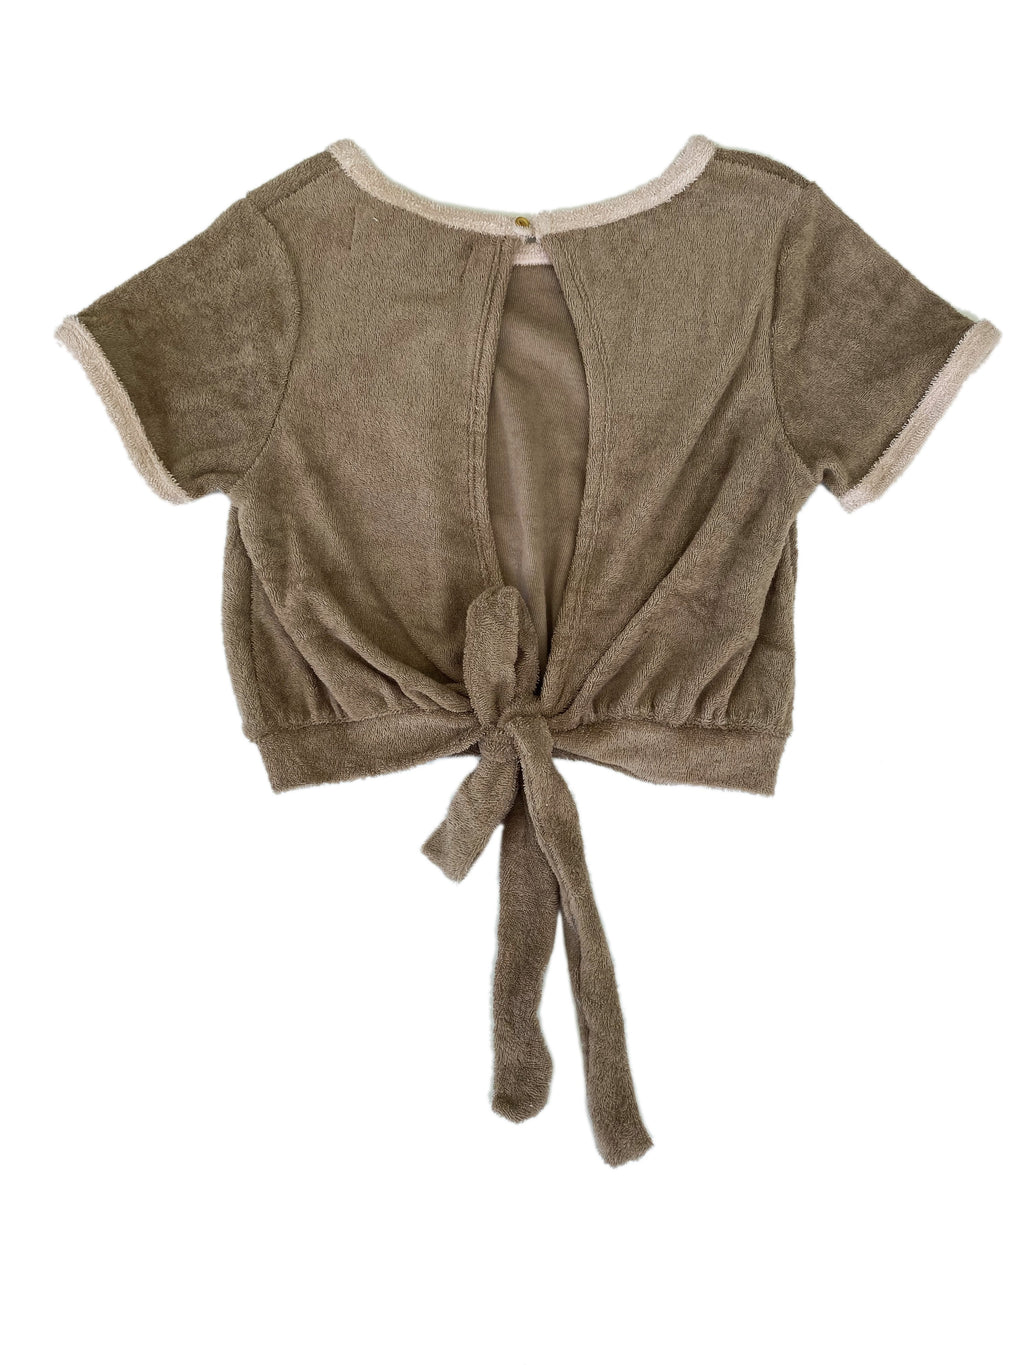 Bella & Lace Bambi Top - Feather